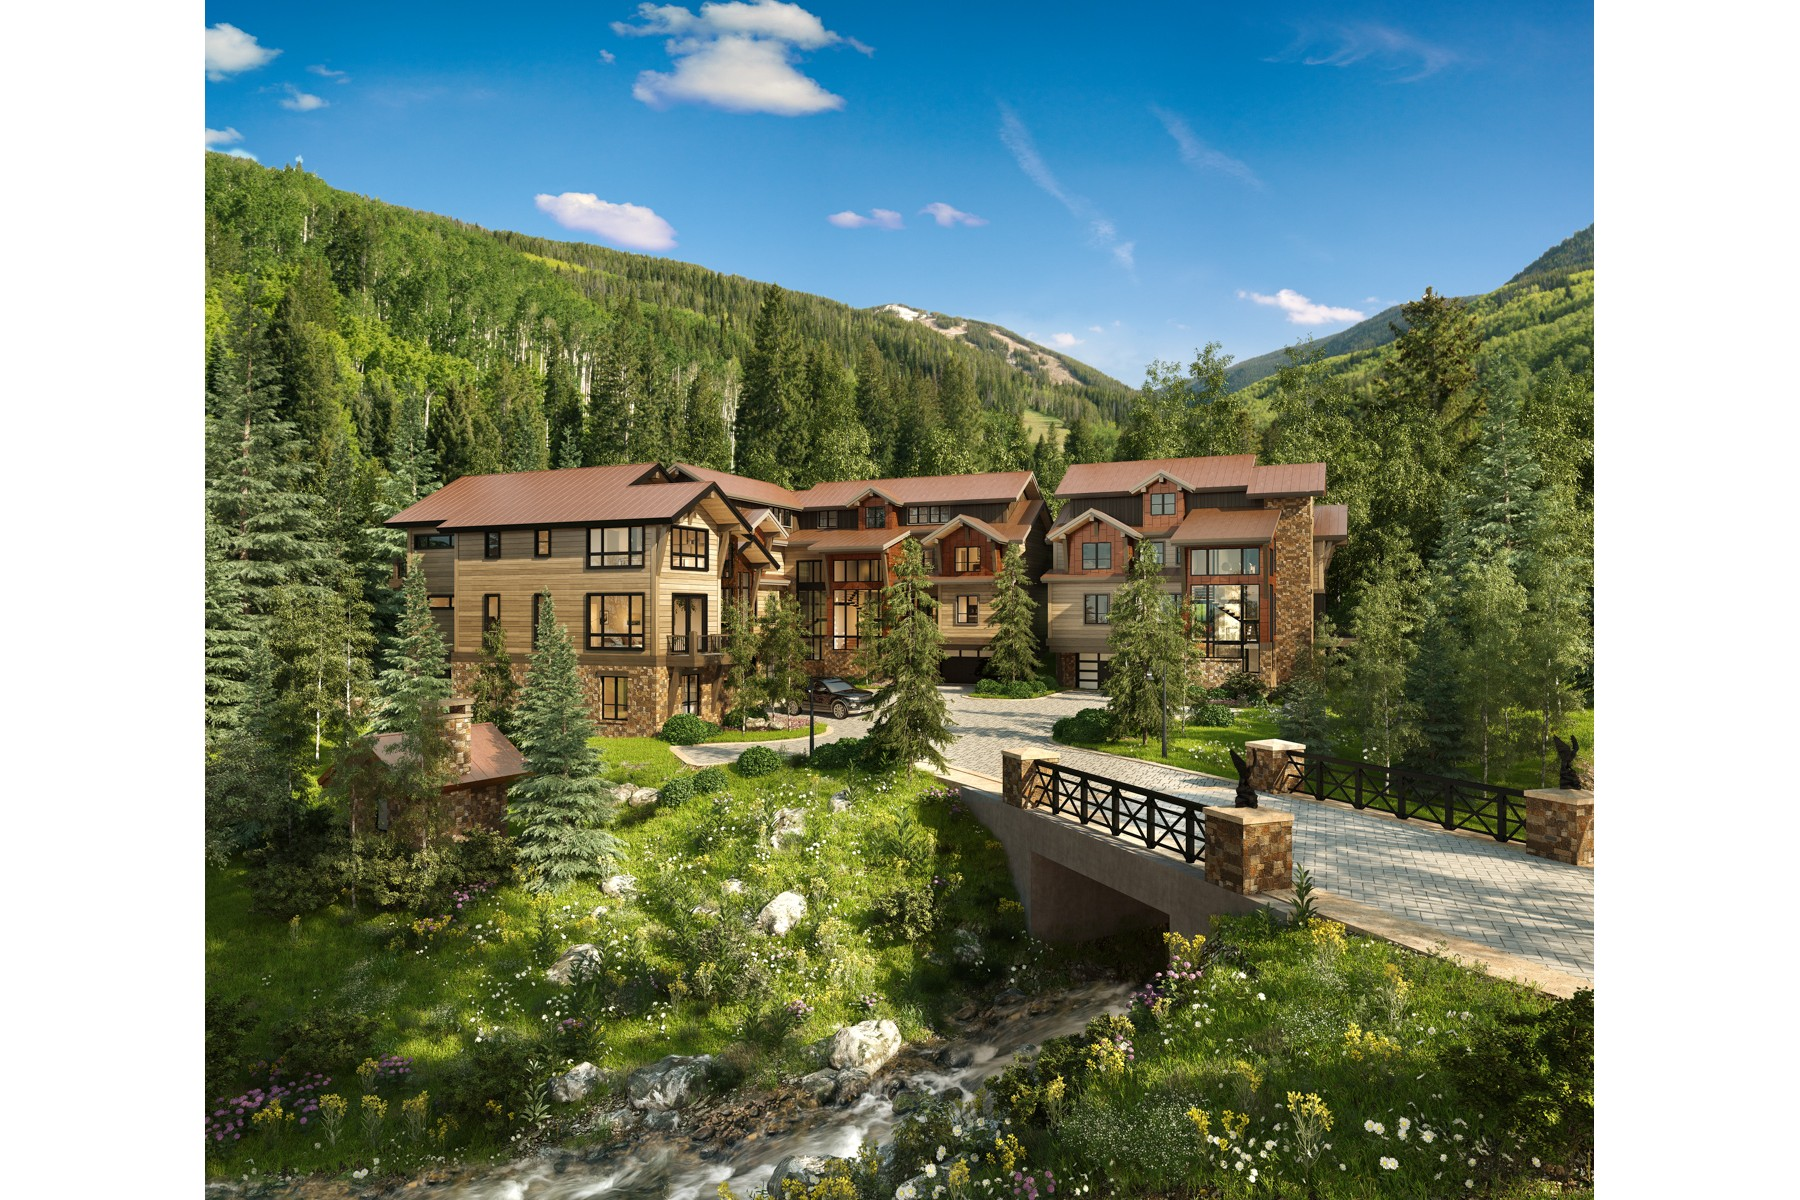 Property for Active at Peregrine Villas 185 Elk Track Road Beaver Creek, Colorado 81620 United States